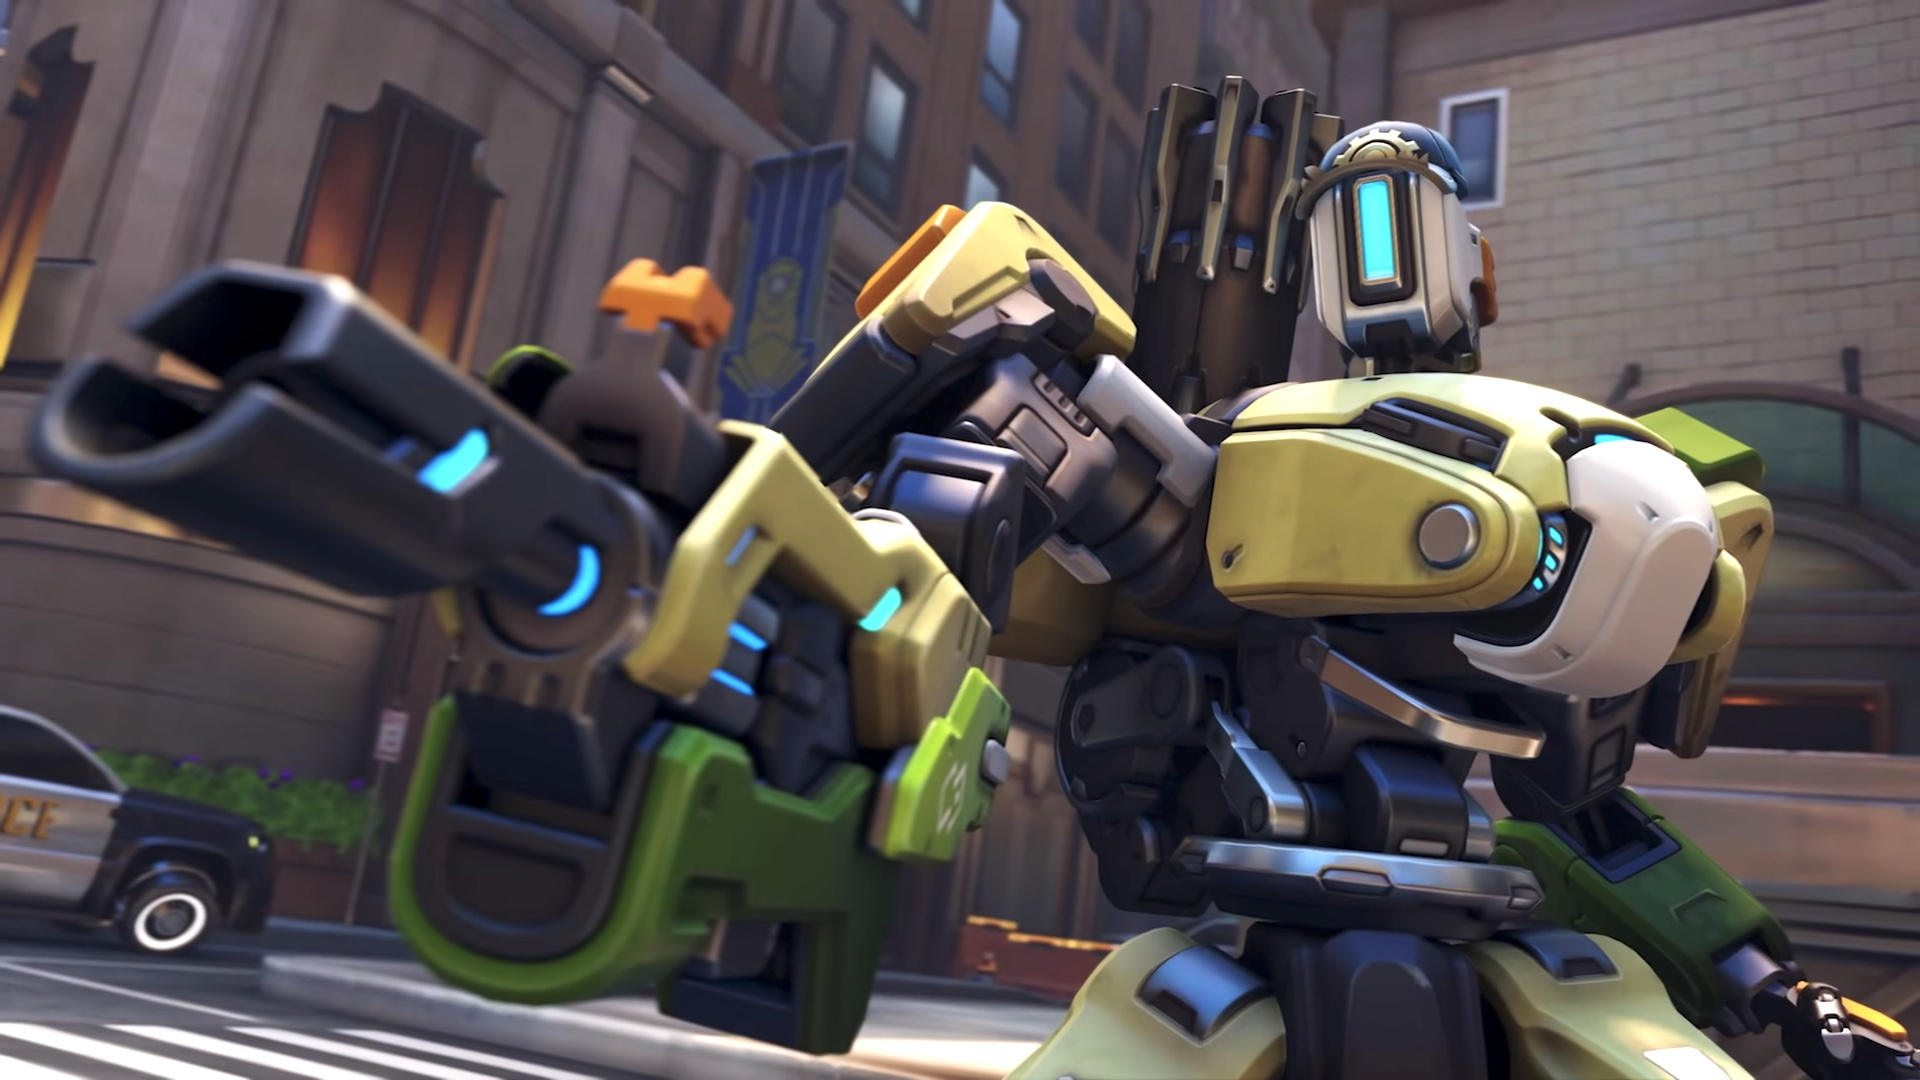 Bastion poses in a still from Overwatch 2